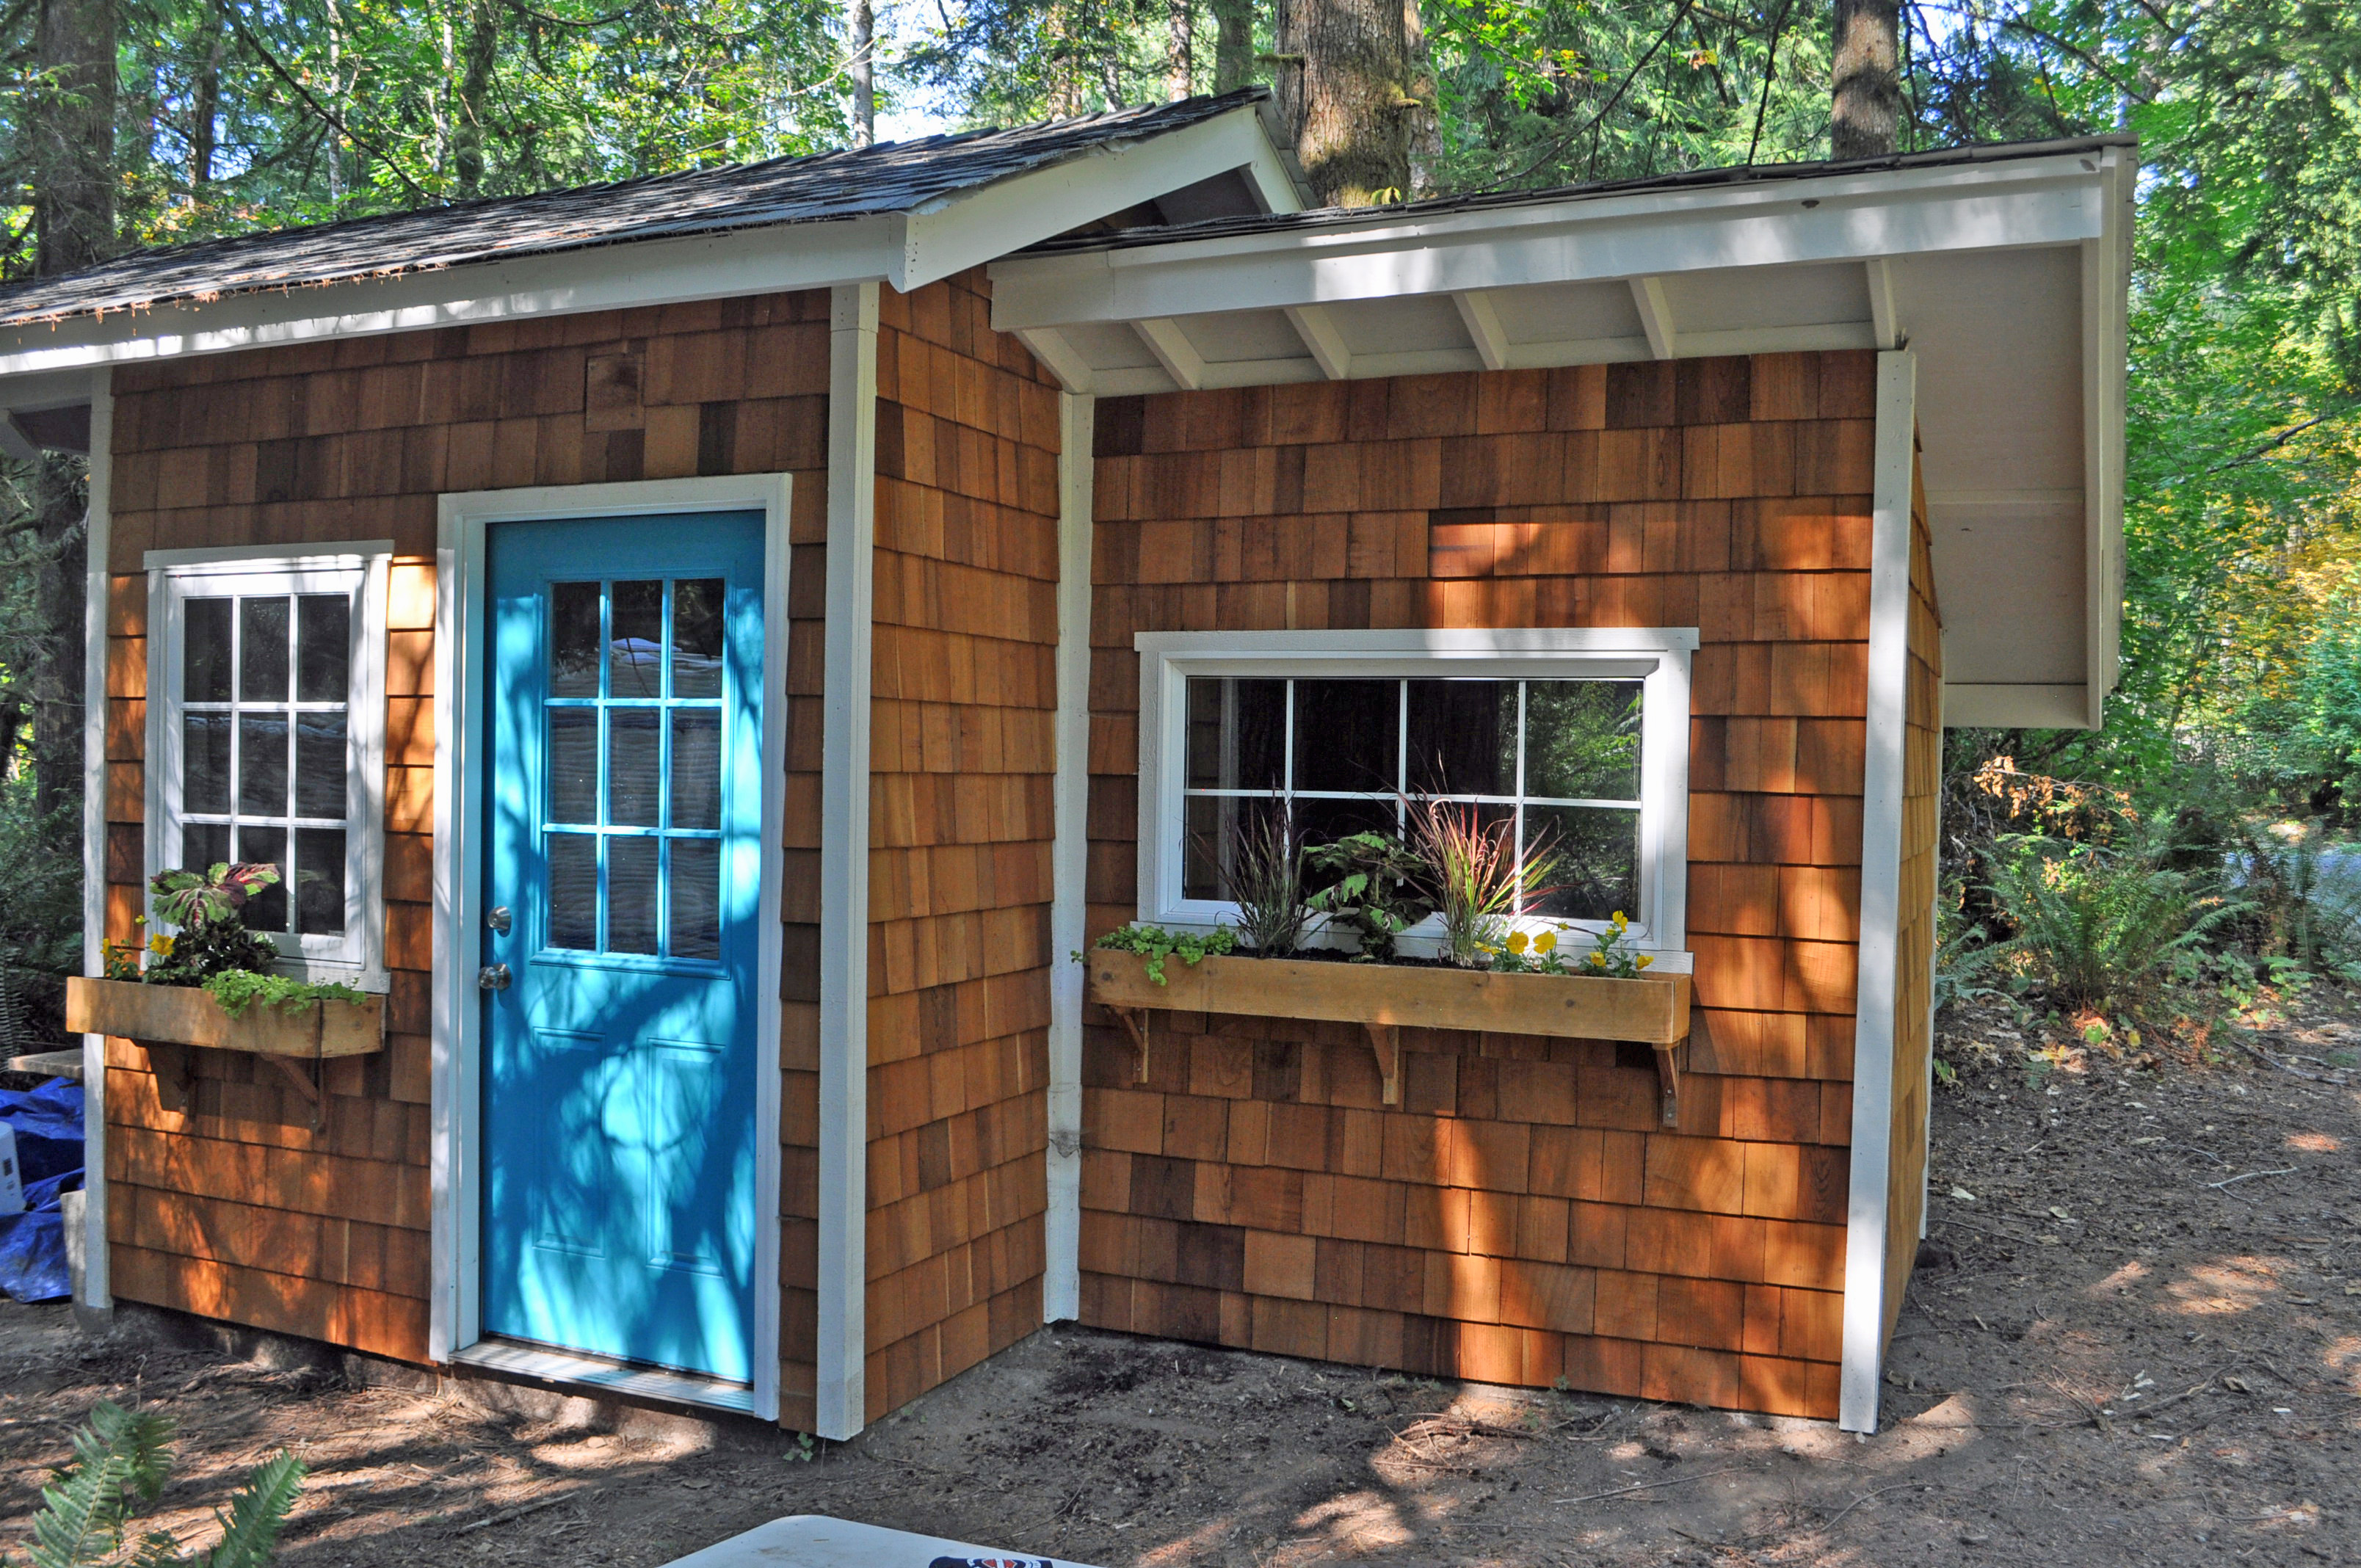 Charmant Southern Living Garden Shed Plans Southern Living Garden Shed Plans